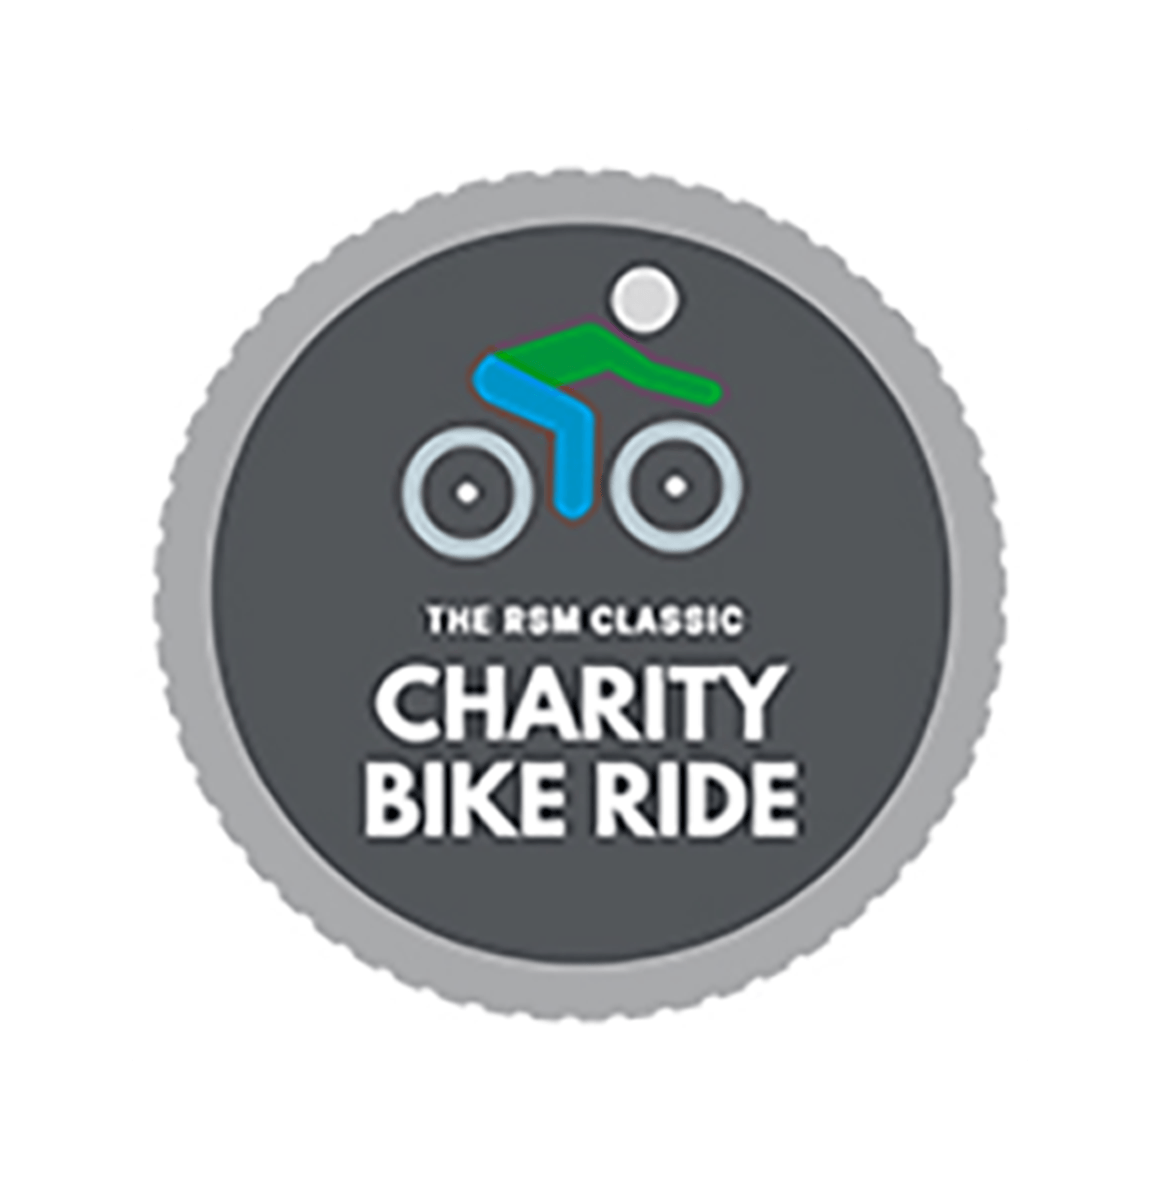 RSM Classic - Charity Bike Ride<br>Nov 17. 2018<br>Jekyll Island, GA